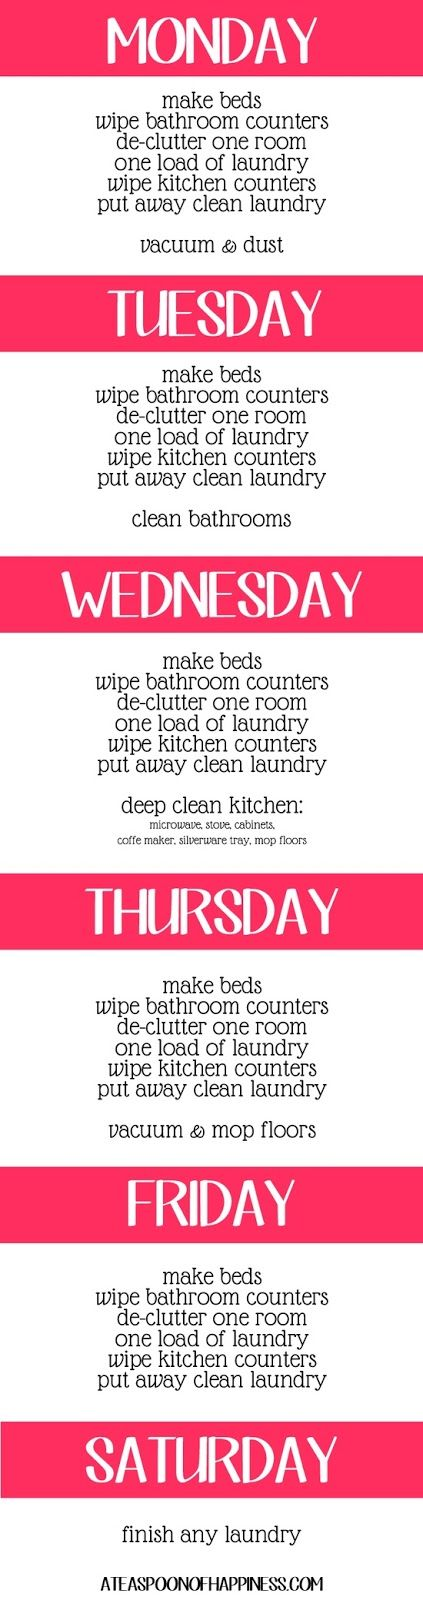 Weekly cleaning list, plan to adapt this to my crazy work schedule :)